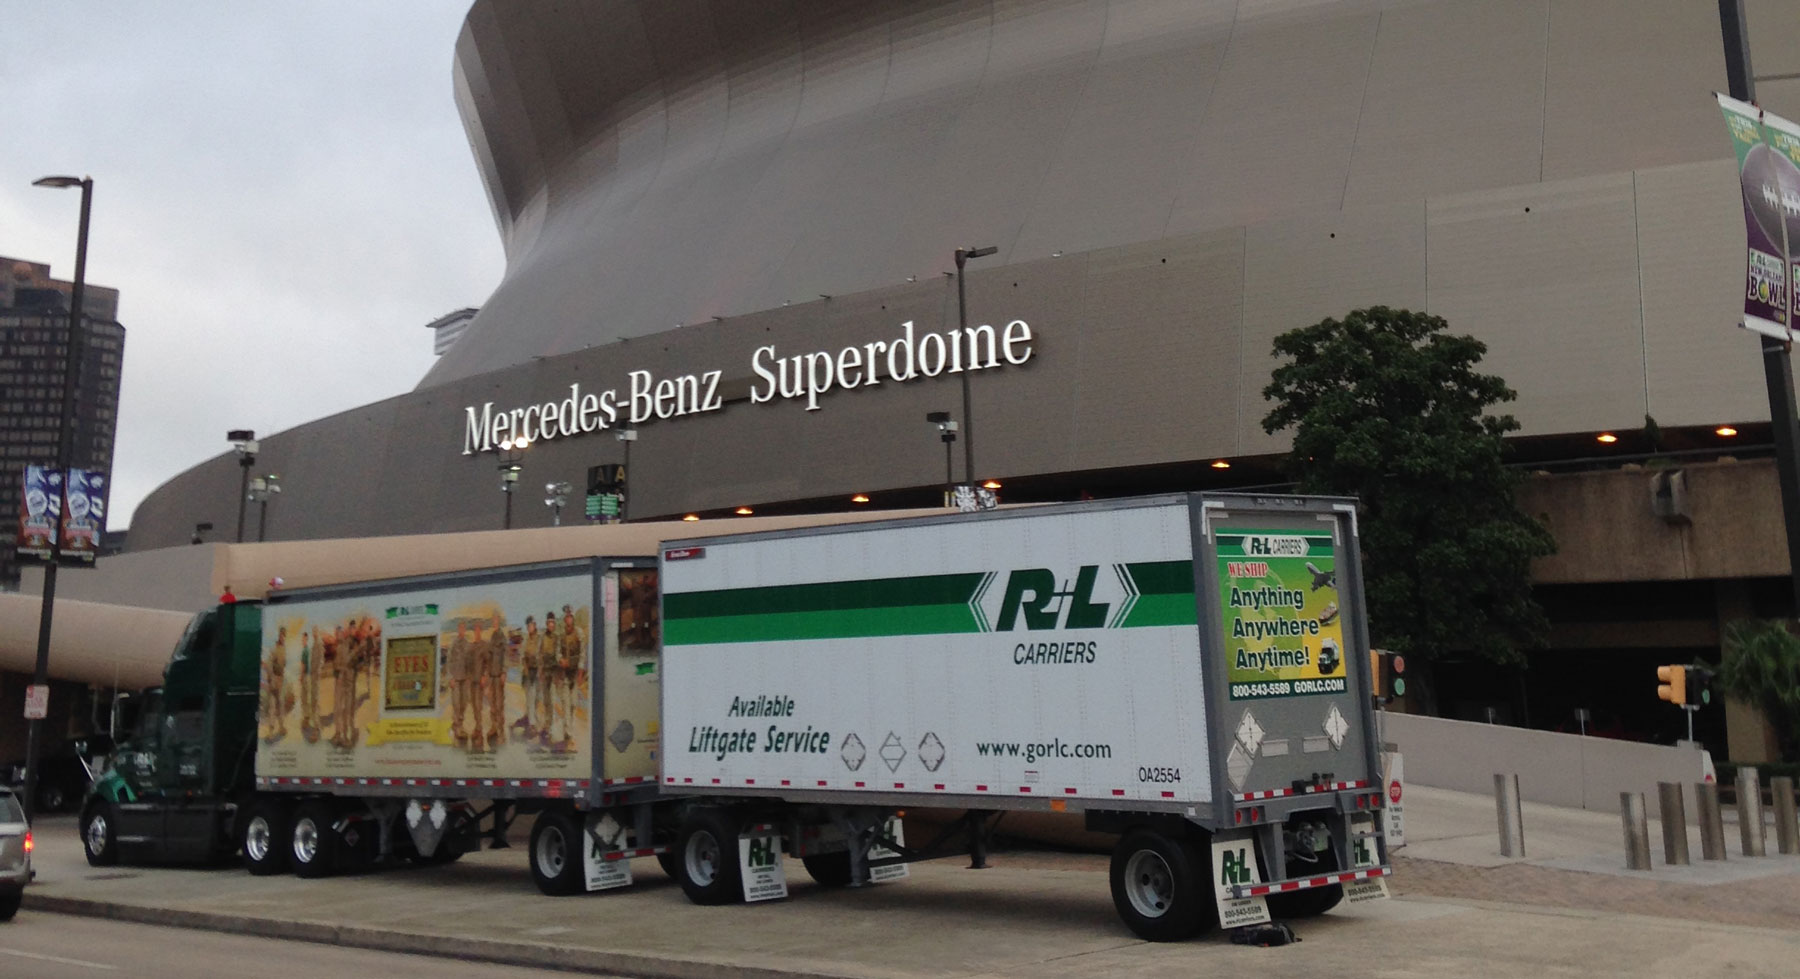 R+L Carriers at the Superdome